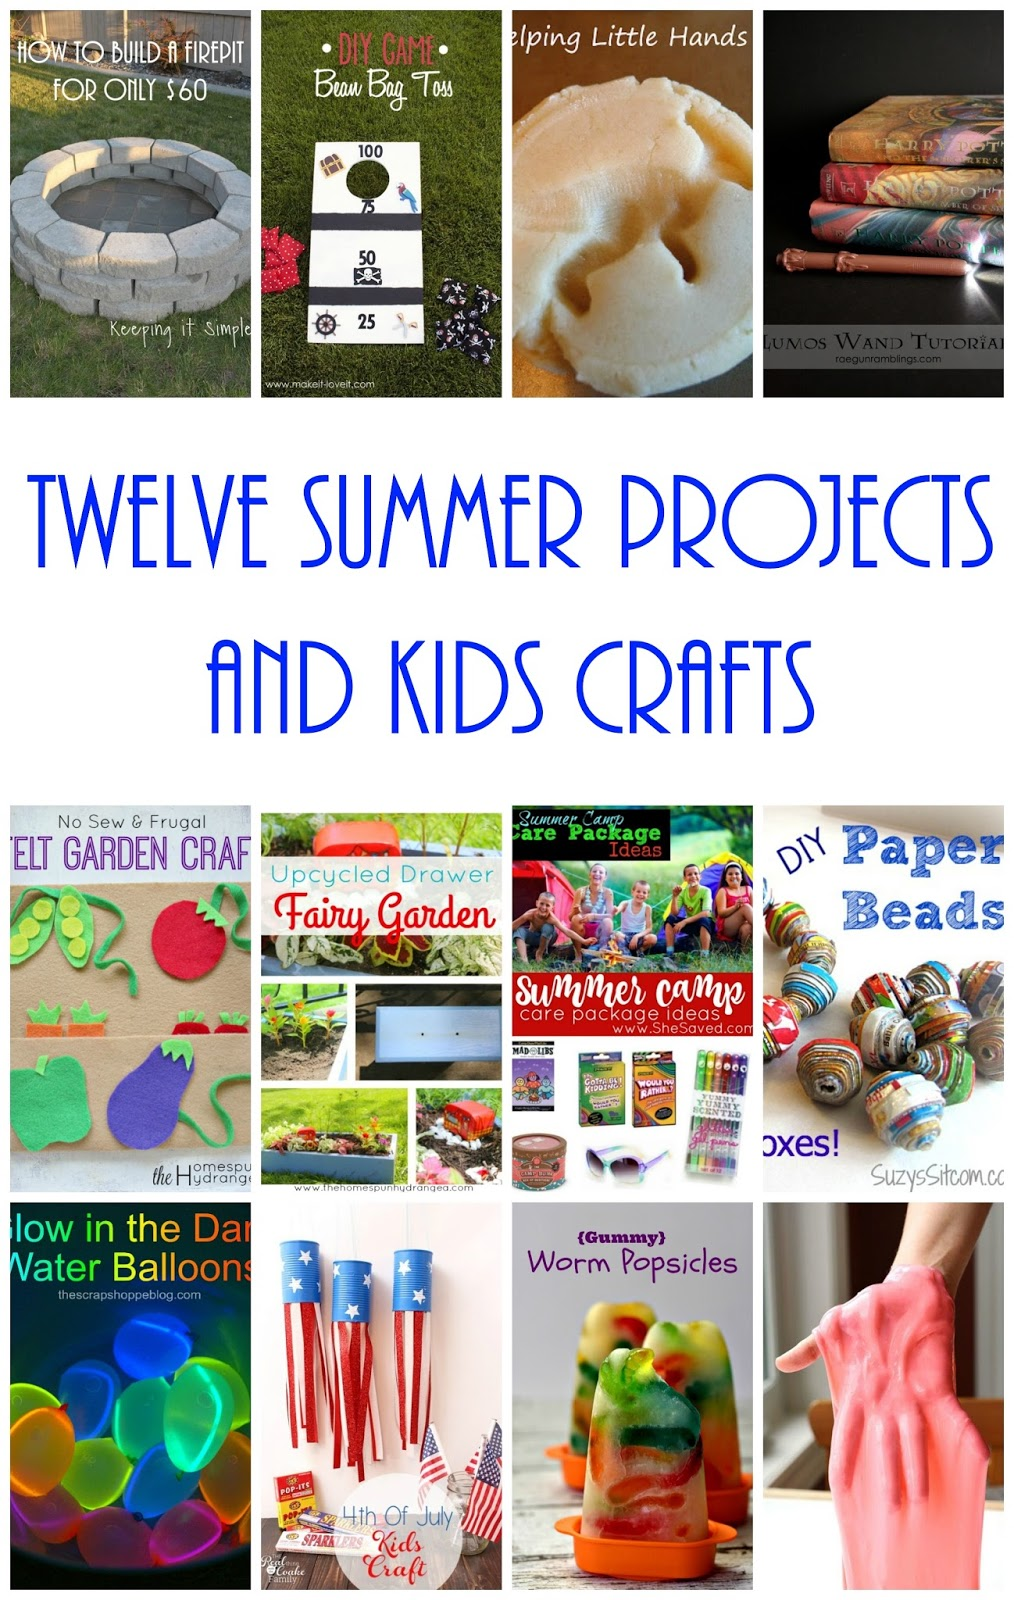 12 crafts and projects to do this summer